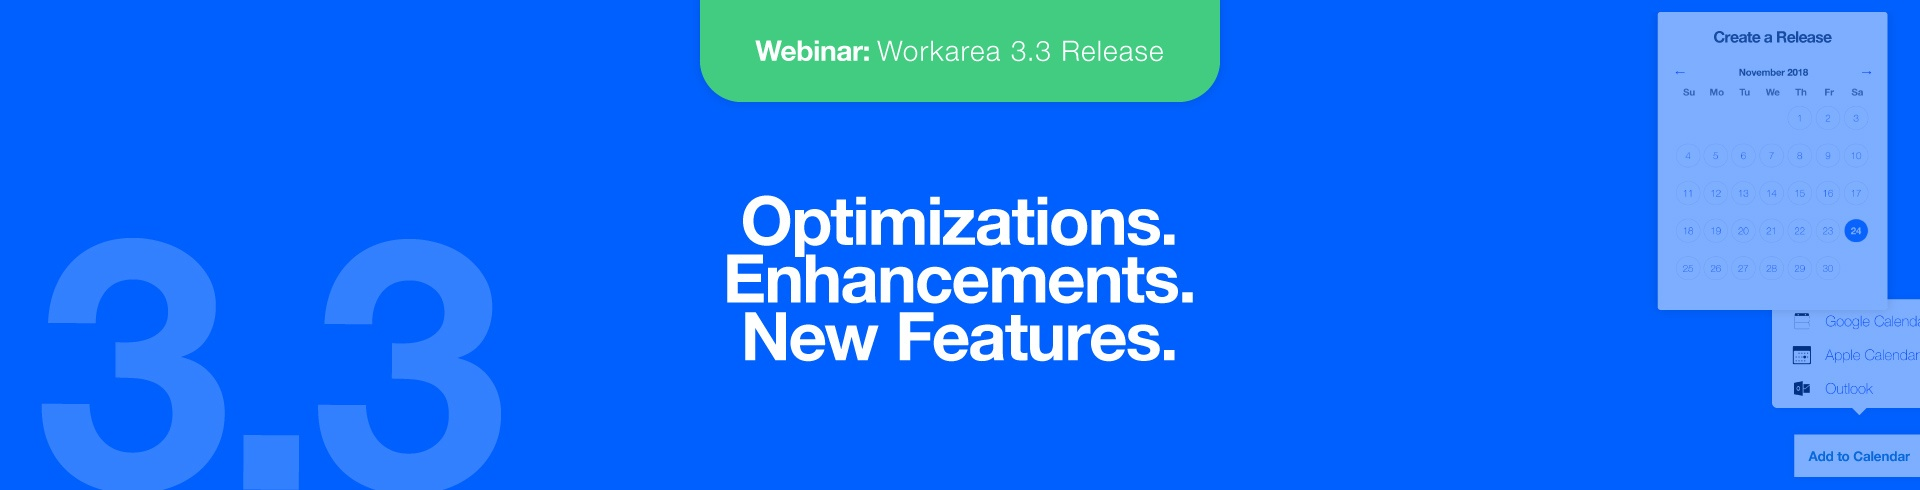 Optimizations.-Enhancements.-New-Features.-2